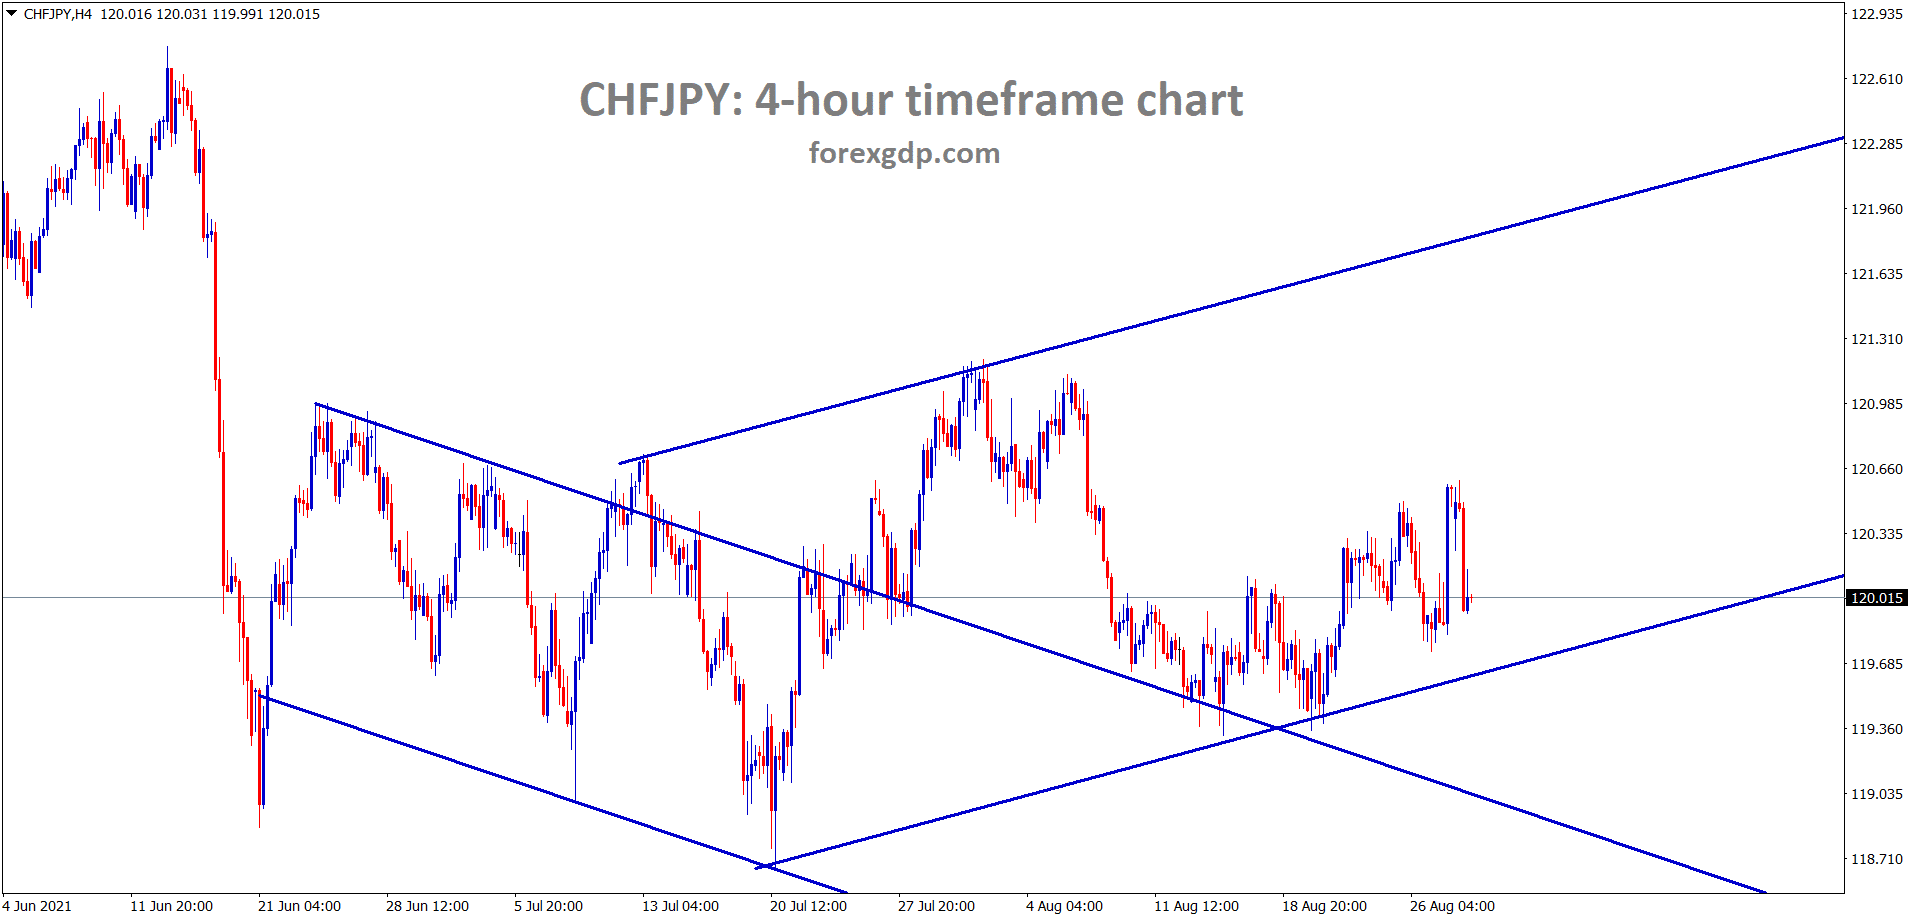 CHFJPY is consolidating between the SR levels inside the channel lines.